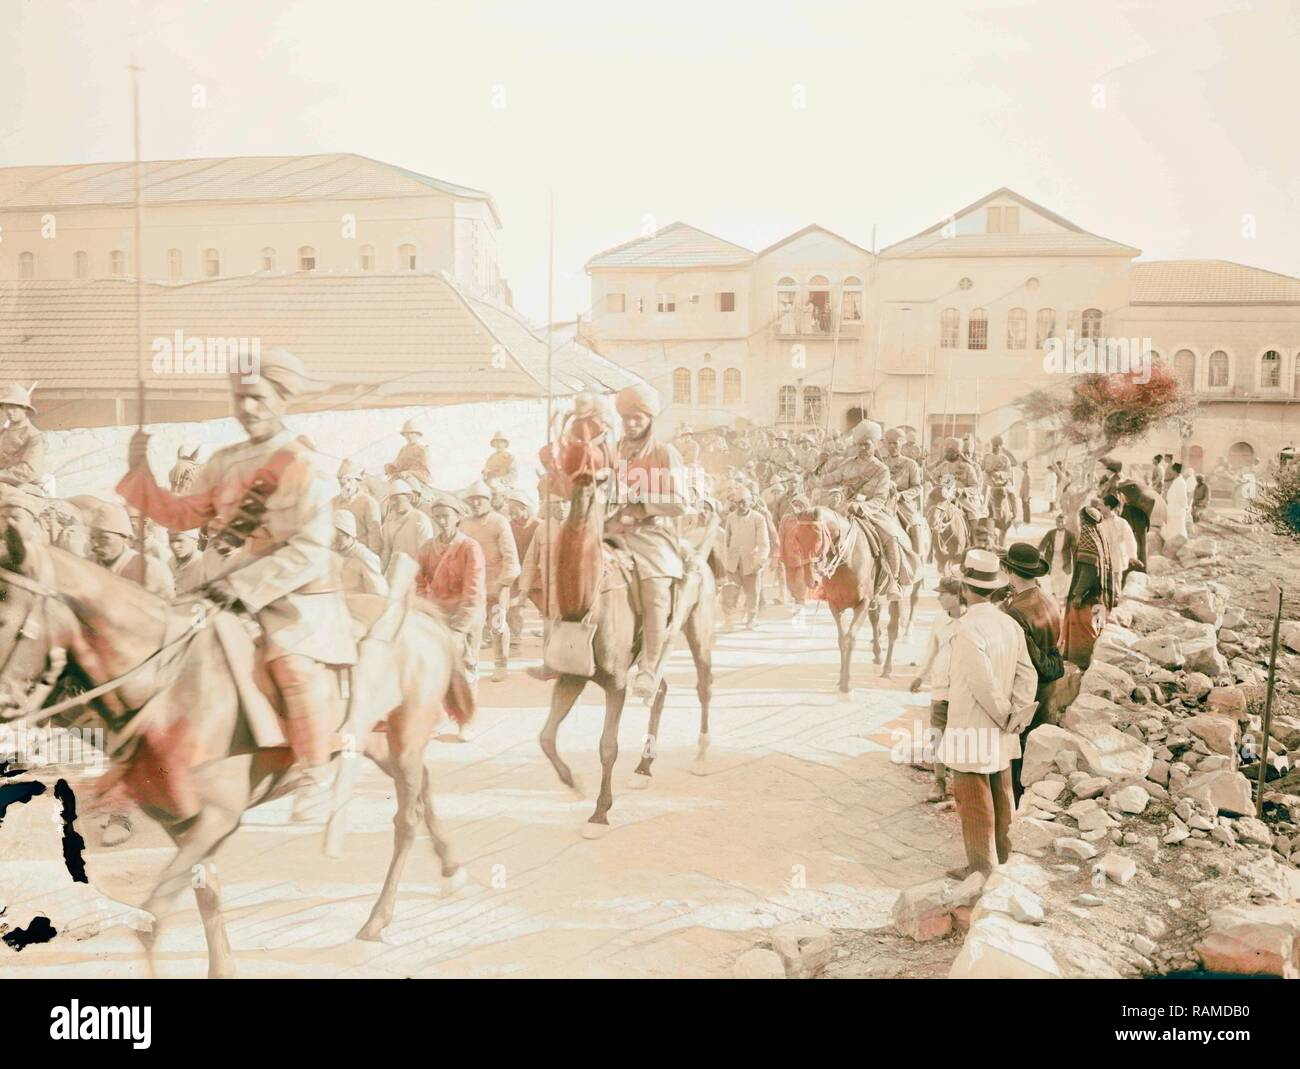 British Indian(?) lancers guarding marching prisoners 1917, Middle East, Israel and/or Palestine. Reimagined - Stock Image